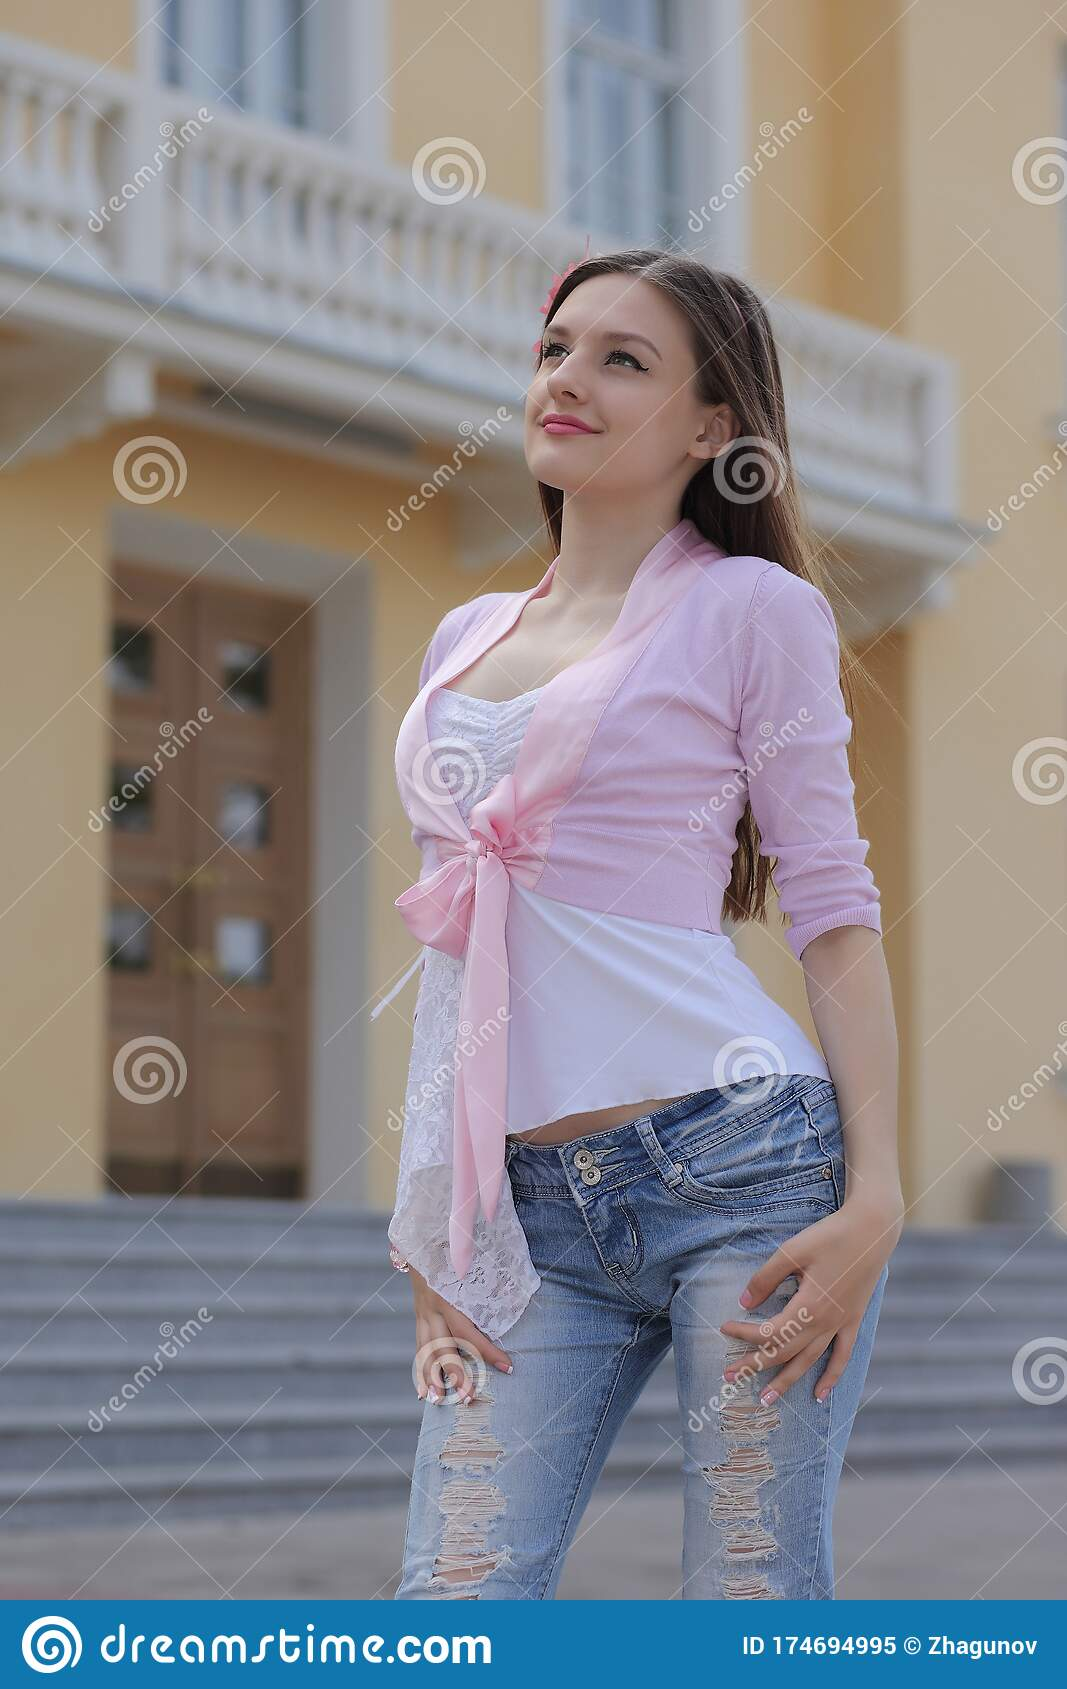 Hot girls in jeand 289 Hot Girl Jeans Belt Photos Free Royalty Free Stock Photos From Dreamstime